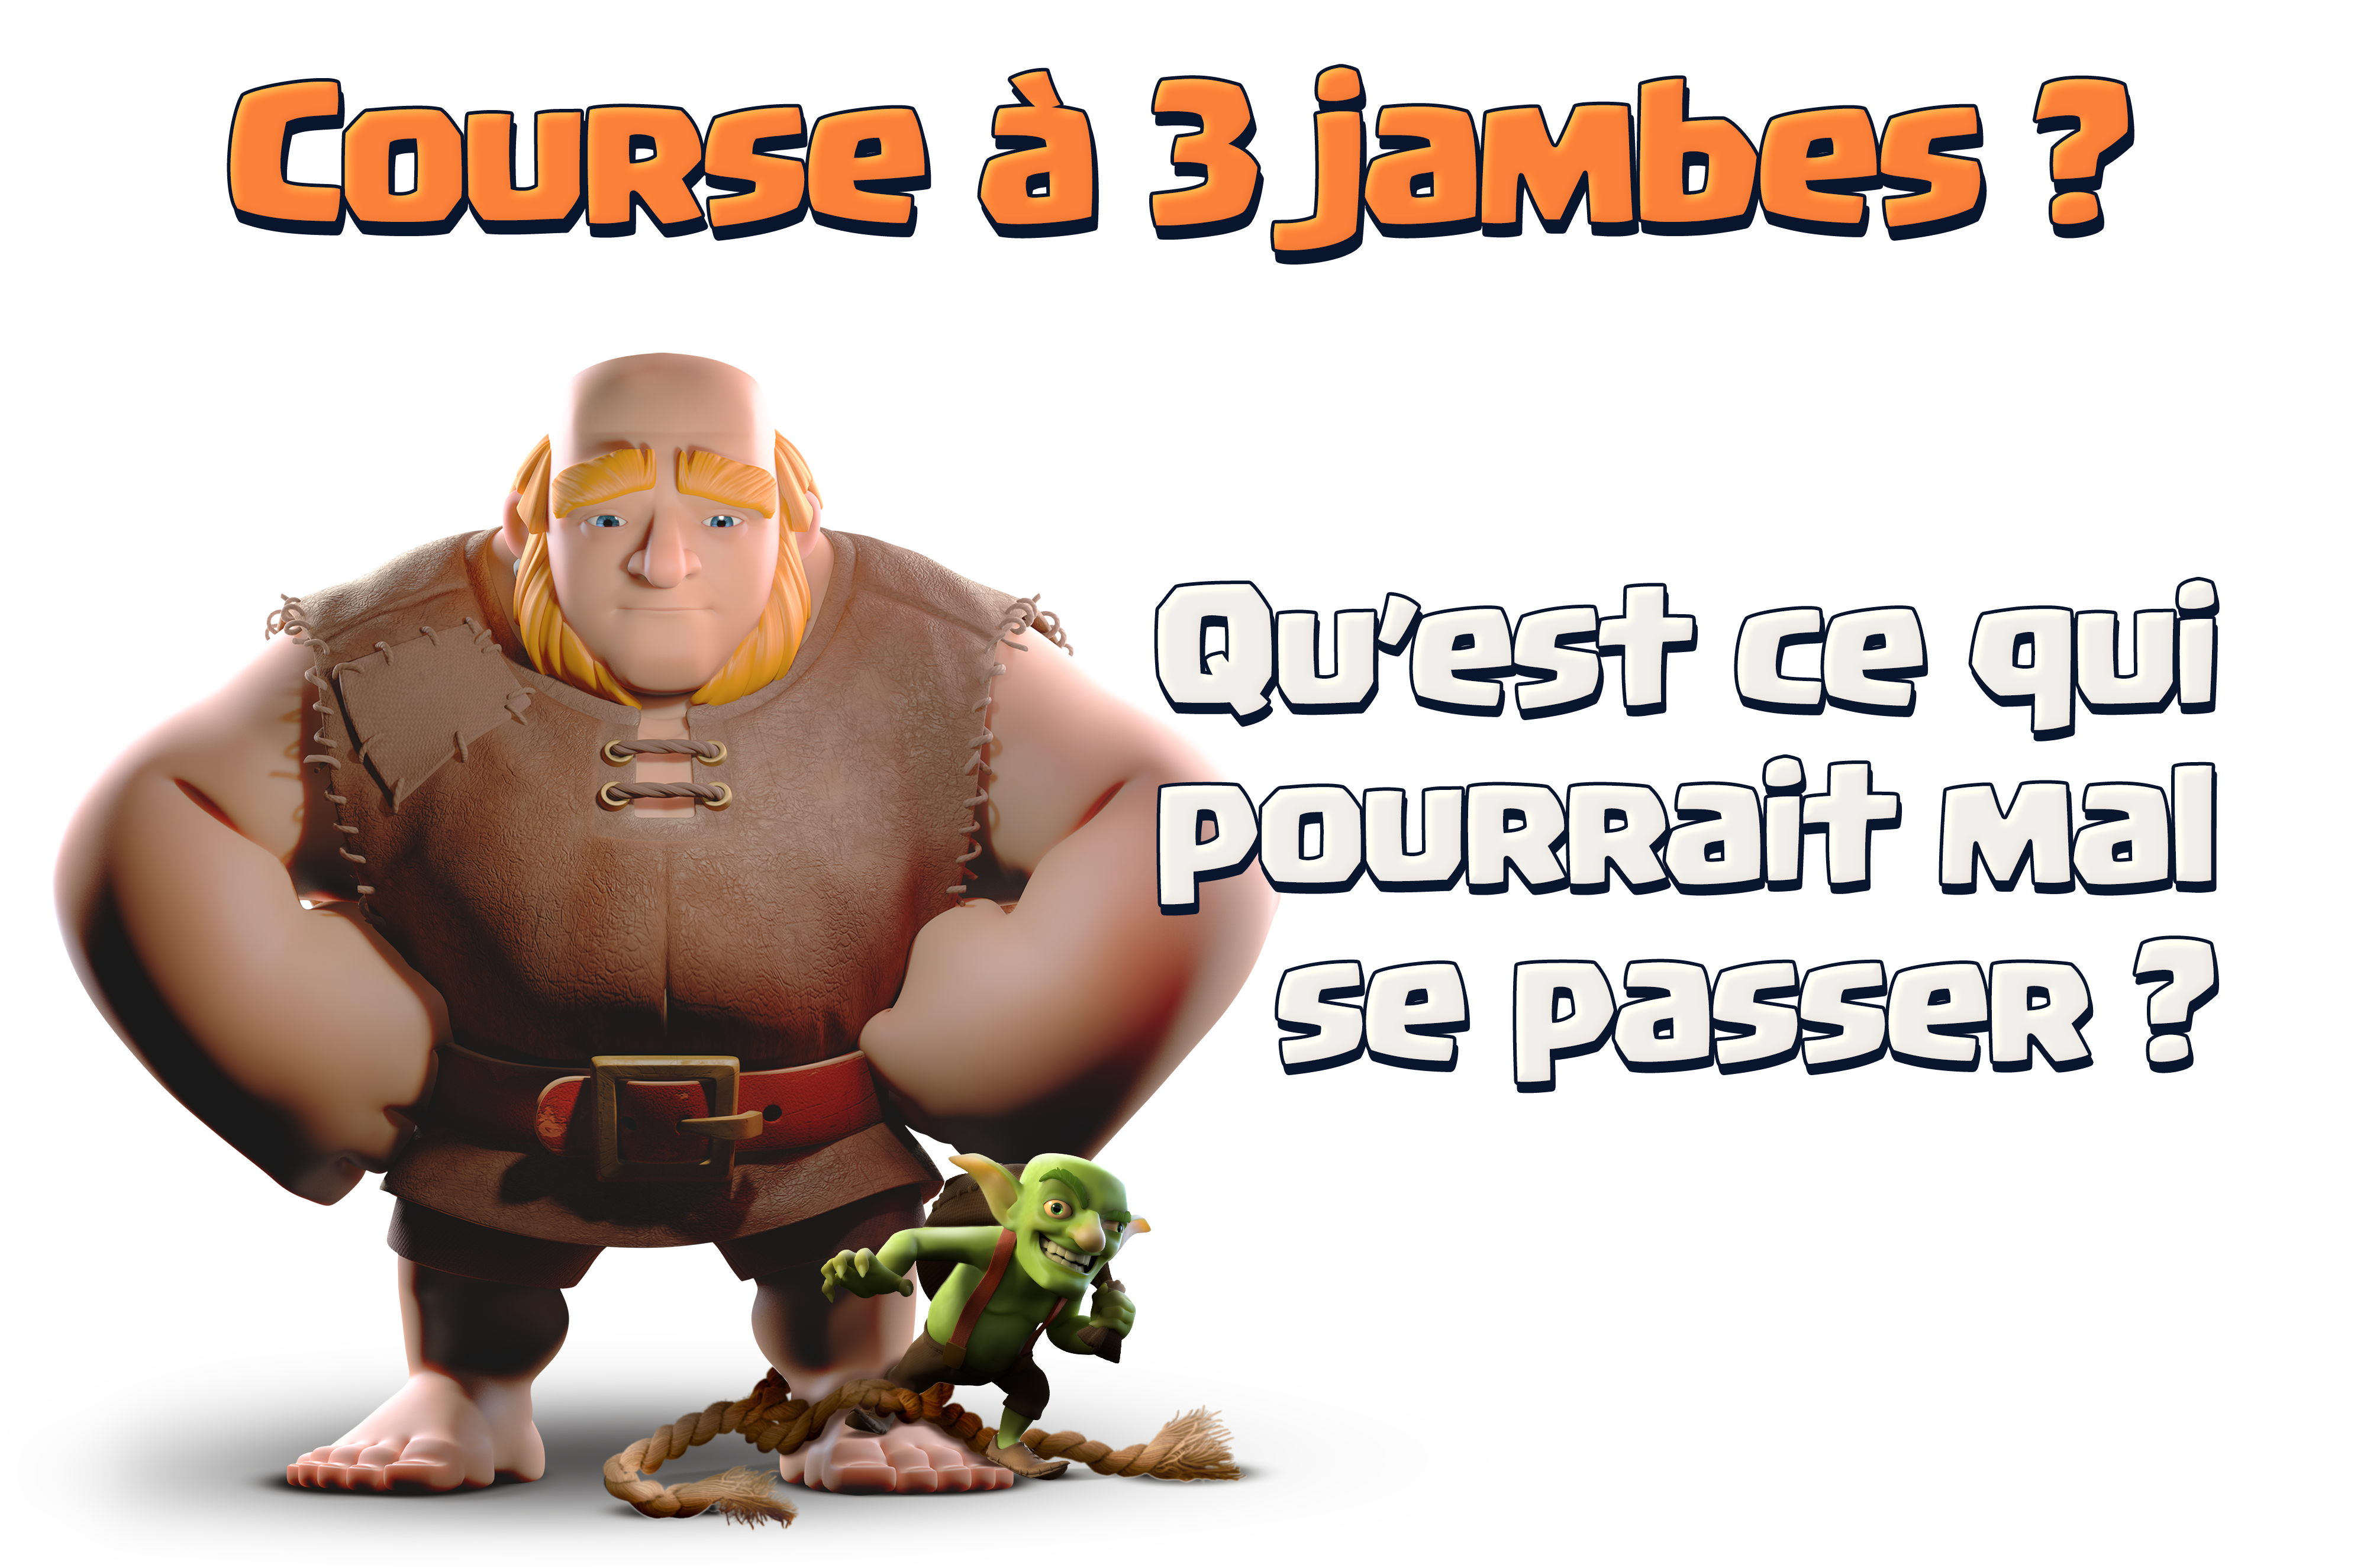 coursea3jambesfr.png?mtime=20171214051810#asset:5196